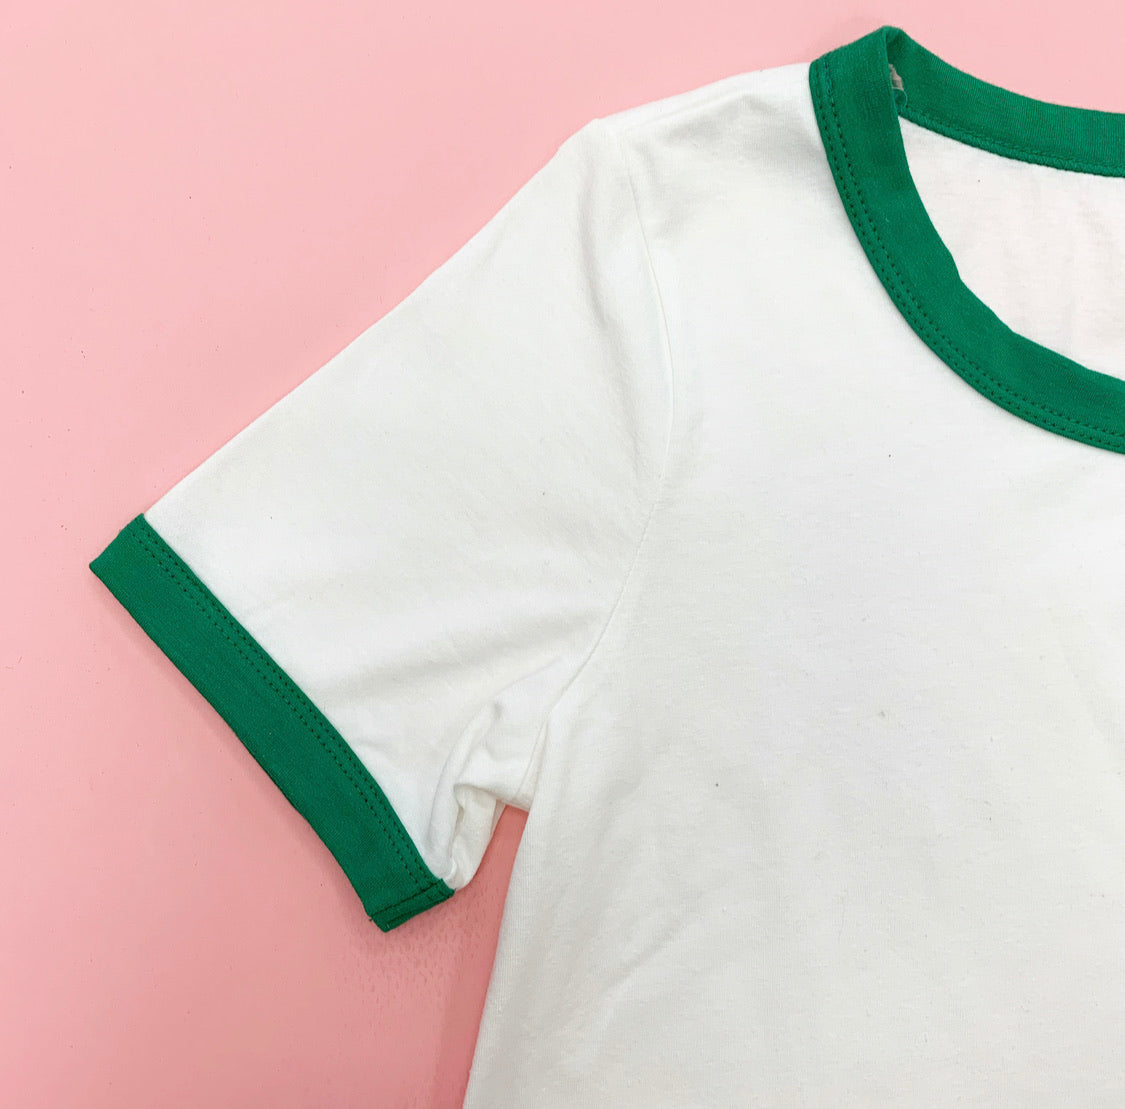 THE CONNOR CONTRAST BASIC TEE IN OFF WHITE